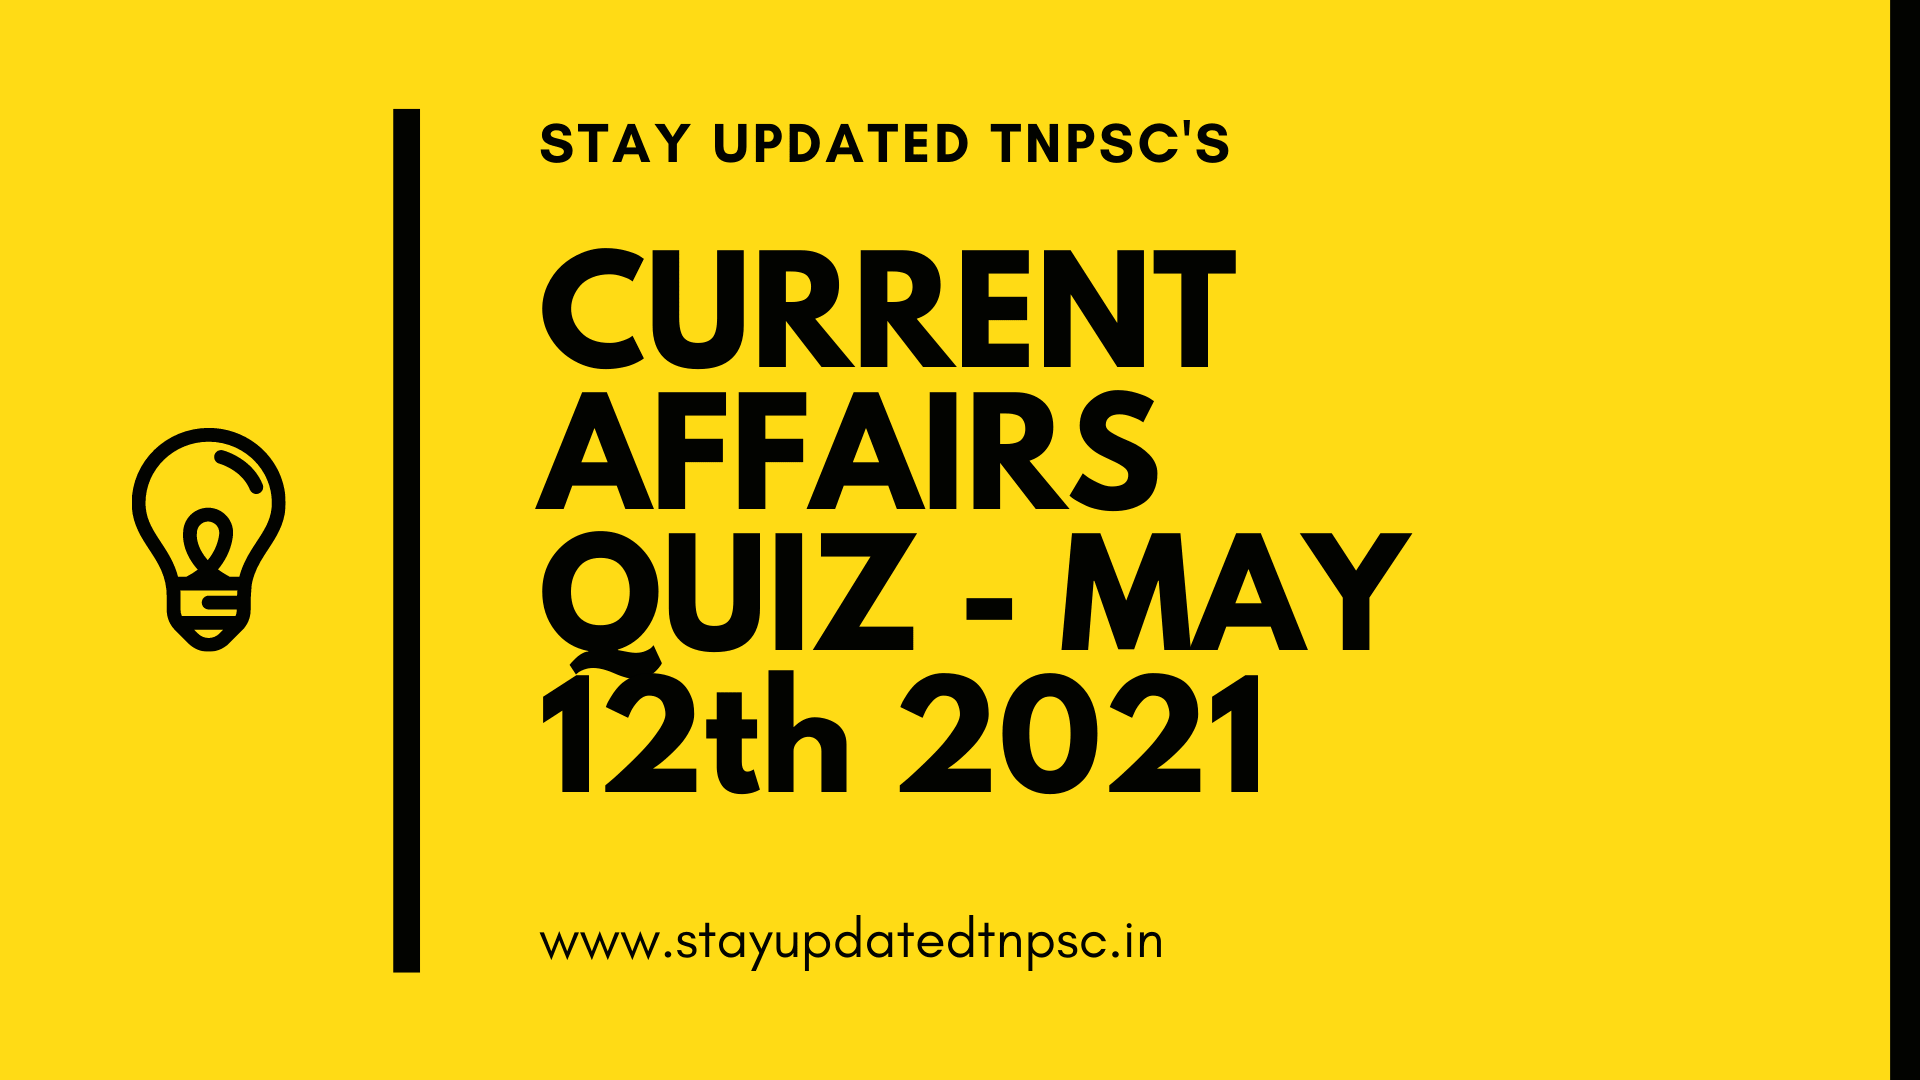 TNPSC DAILY CURRENT AFFAIRS : 12 MAY 2021